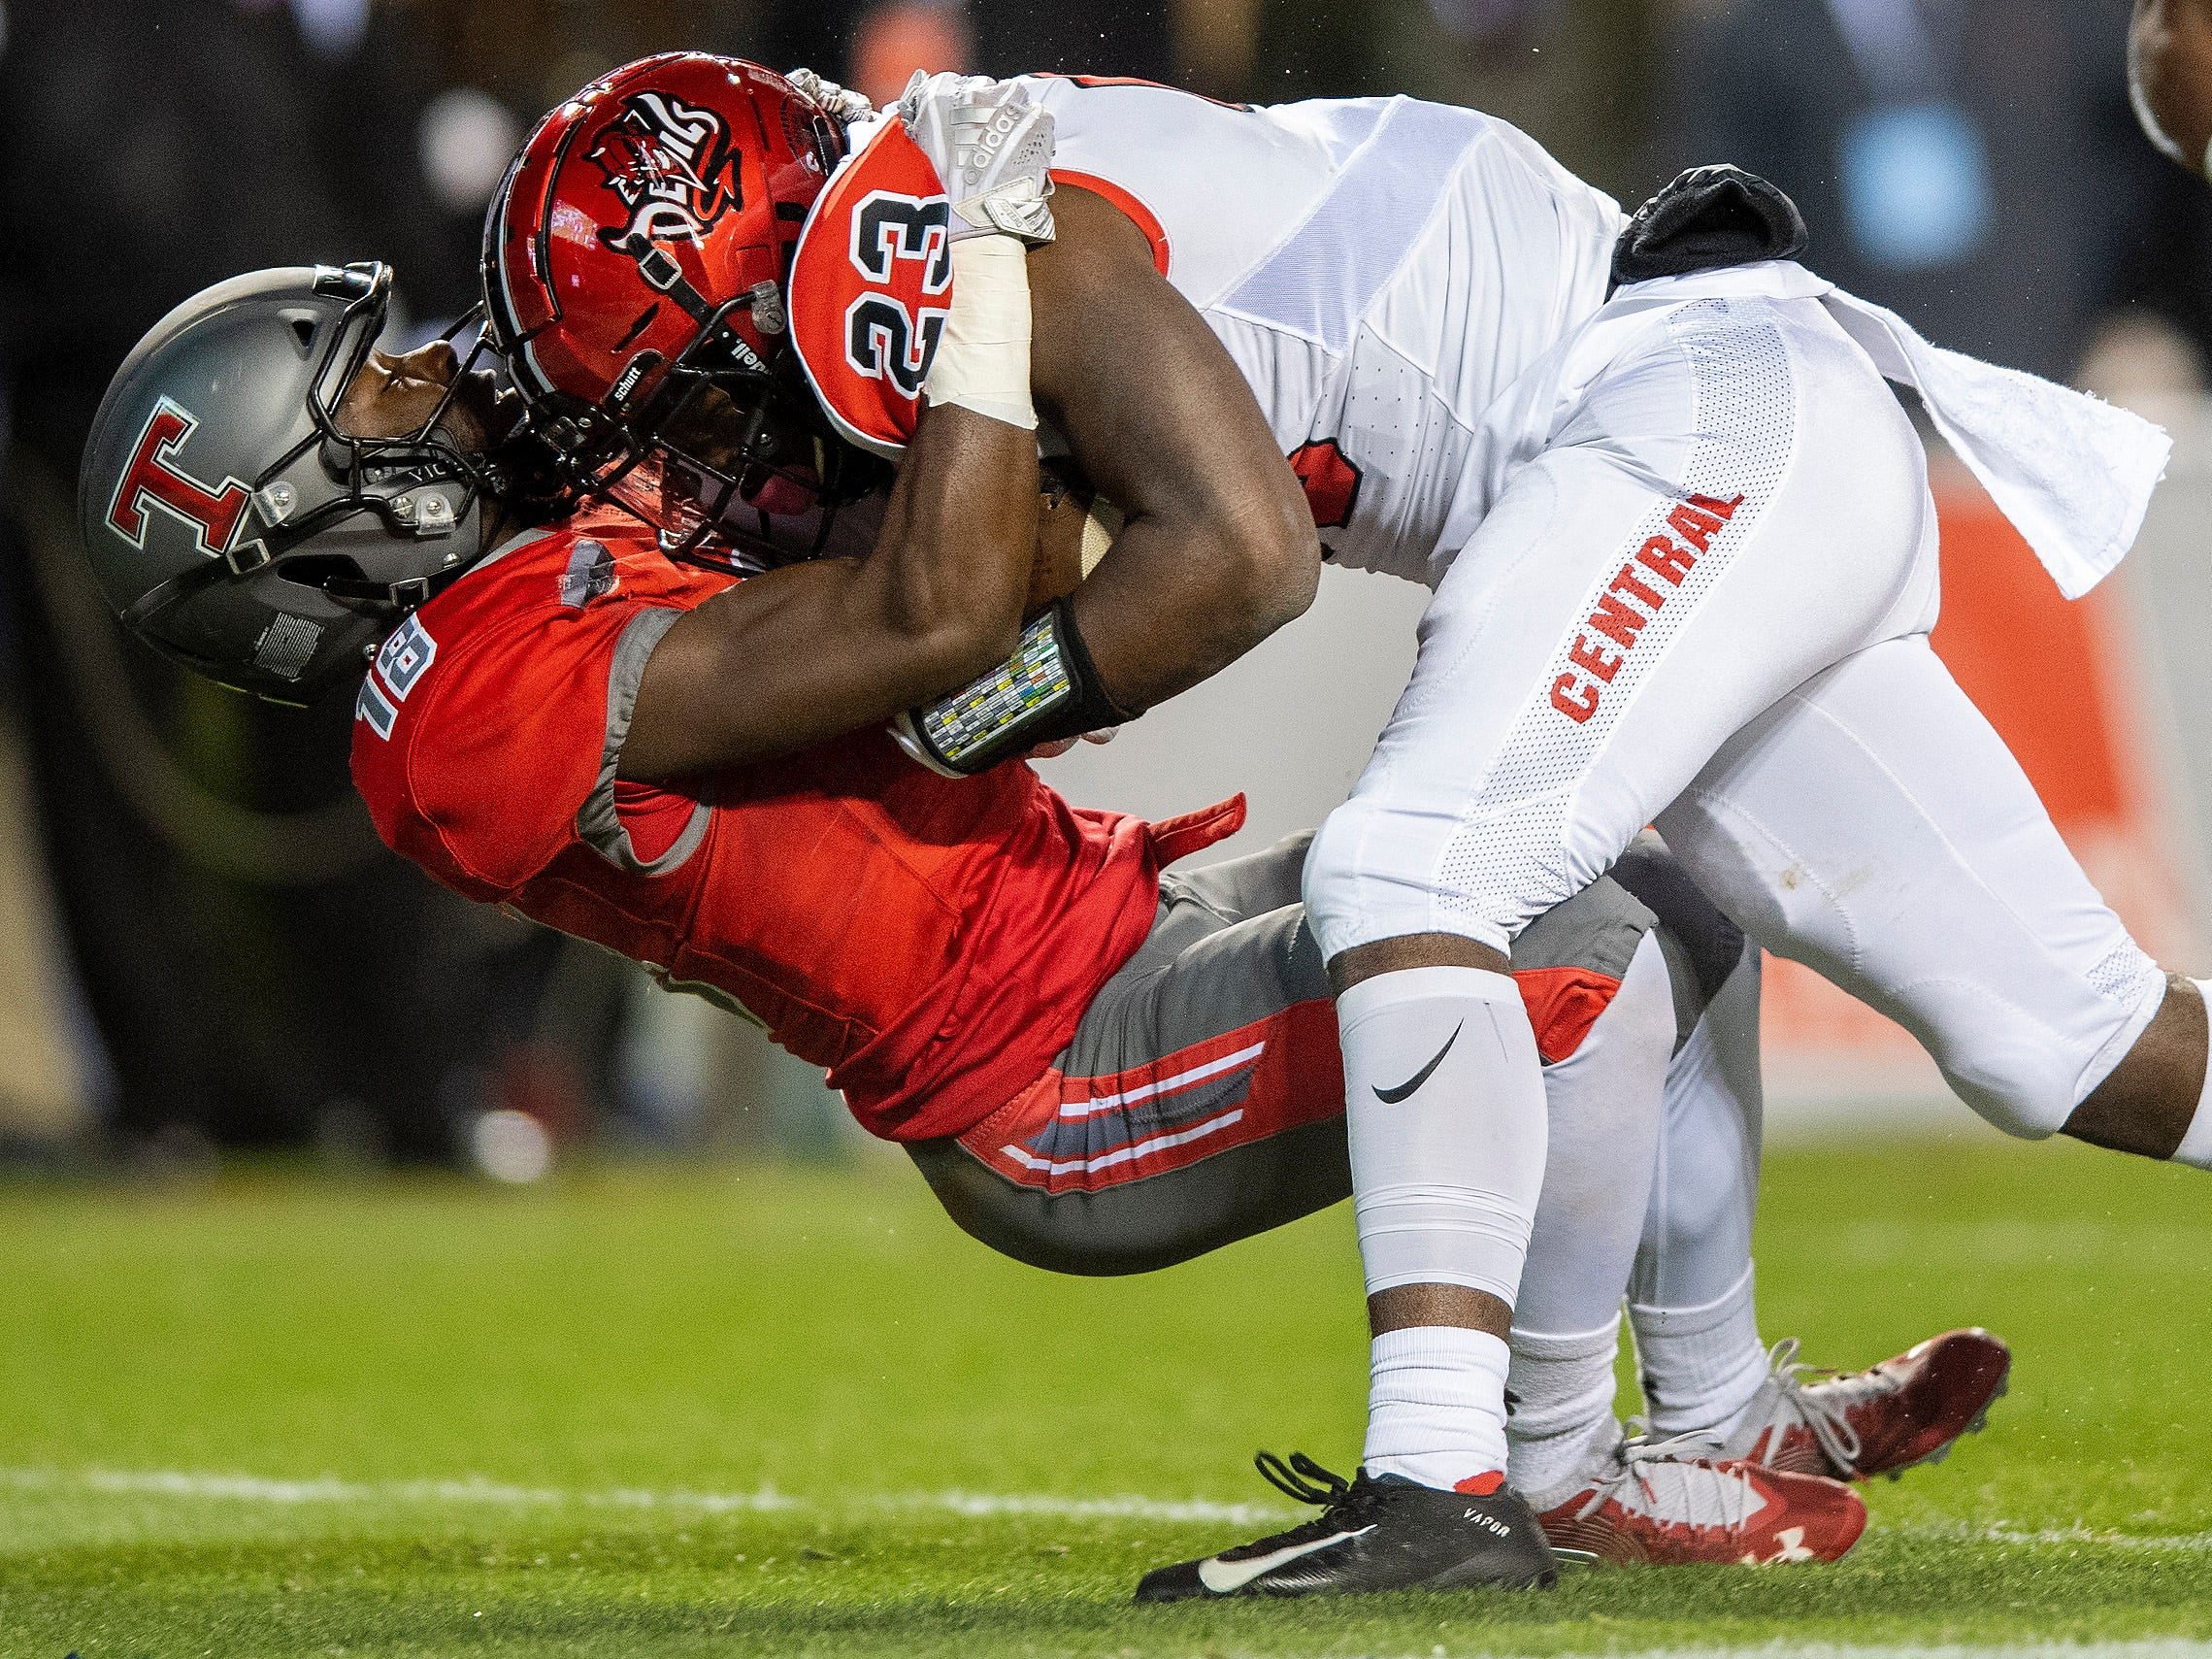 Central-Phenix City's Joseph McKay runs over Thompson's Elijah Clayton as he scores a touchdown during the AHSAA Class 7A State Championship Football Game at Jordan Hare Stadium in Auburn, Ala., on Wednesday evening December 5, 2018.